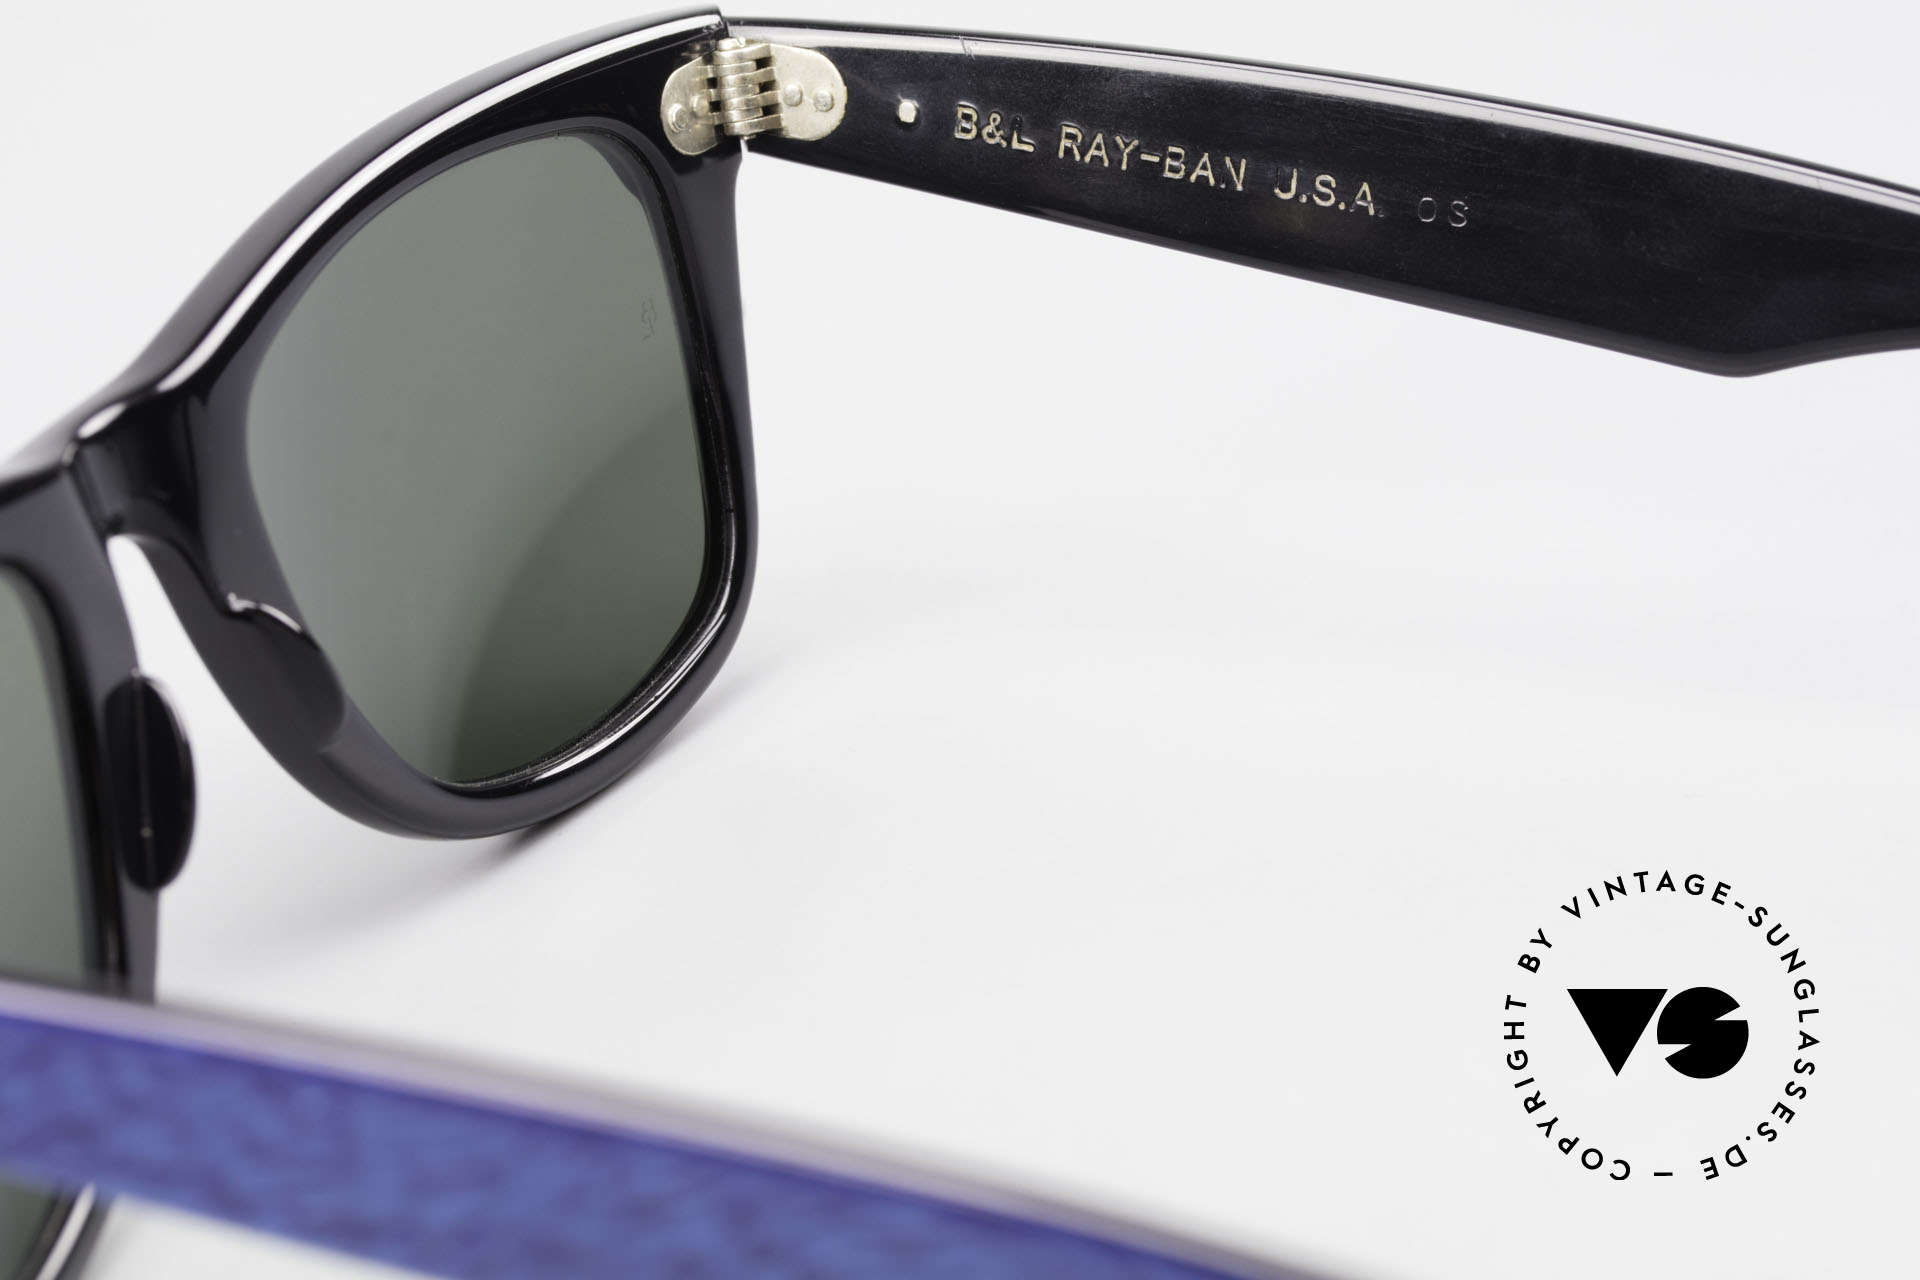 Ray Ban Wayfarer I Old 80's Bausch Lomb Ray-Ban, Size: medium, Made for Men and Women